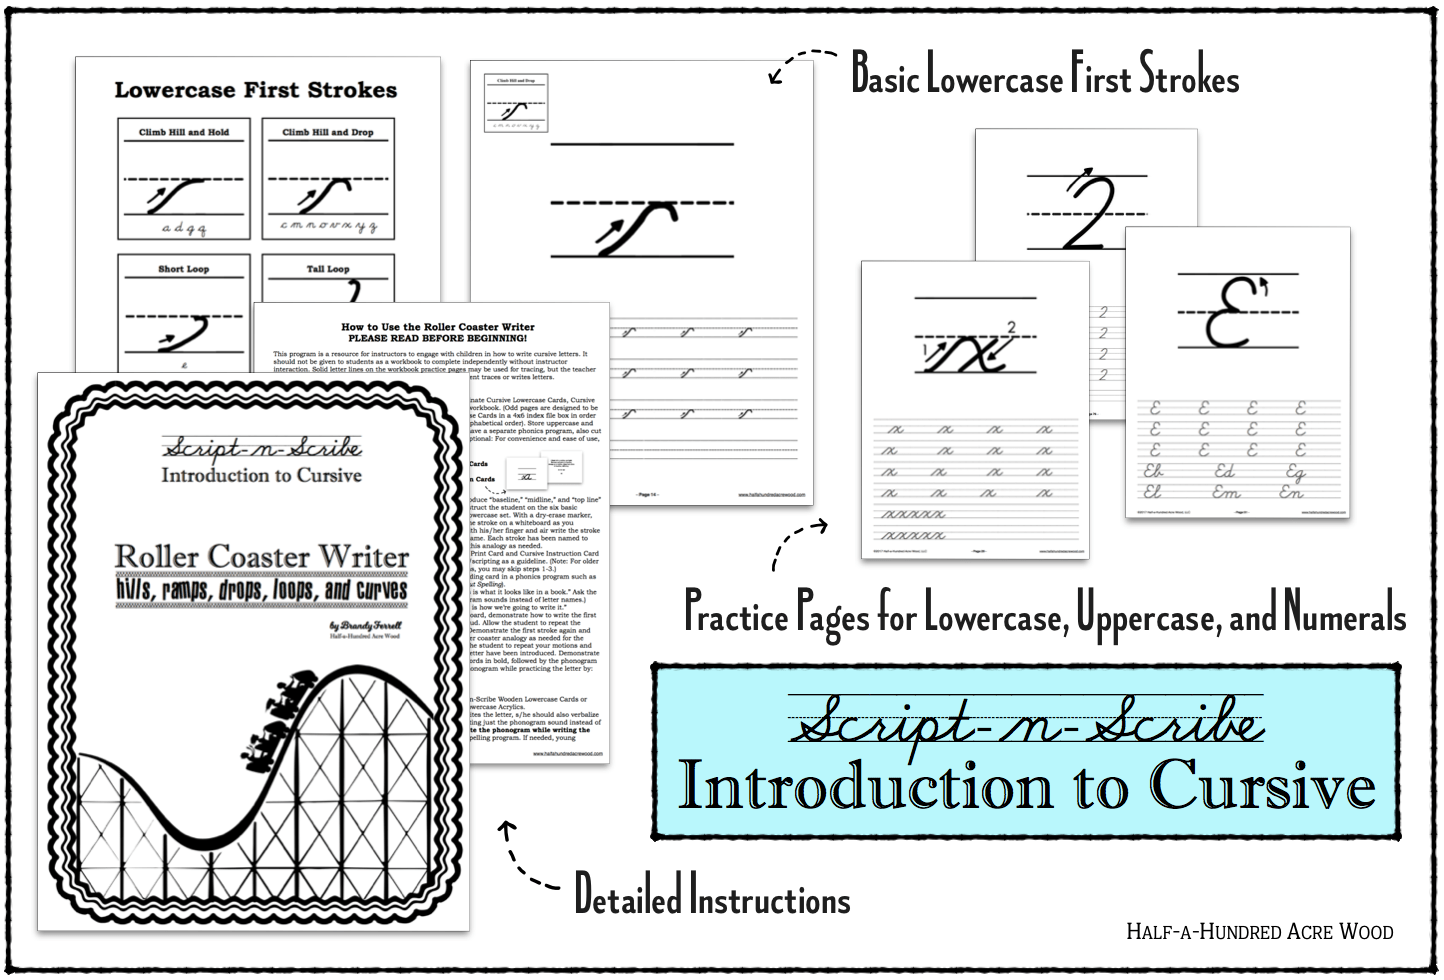 Introduction To Cursive Program The Roller Coaster Writer